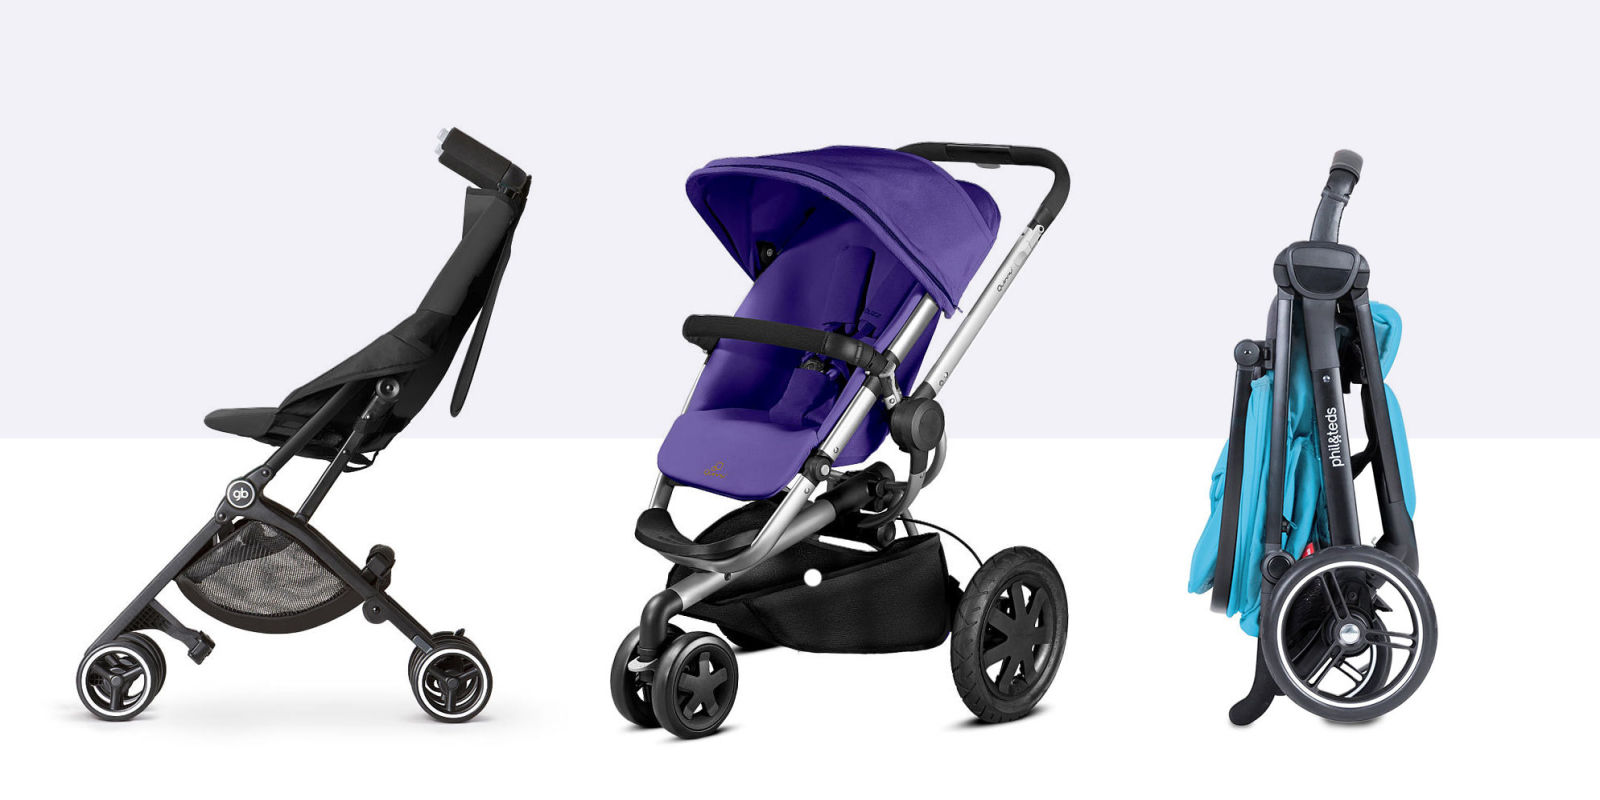 15 Best Baby Strollers of 2017 - Double, Umbrella, and Jogging ...